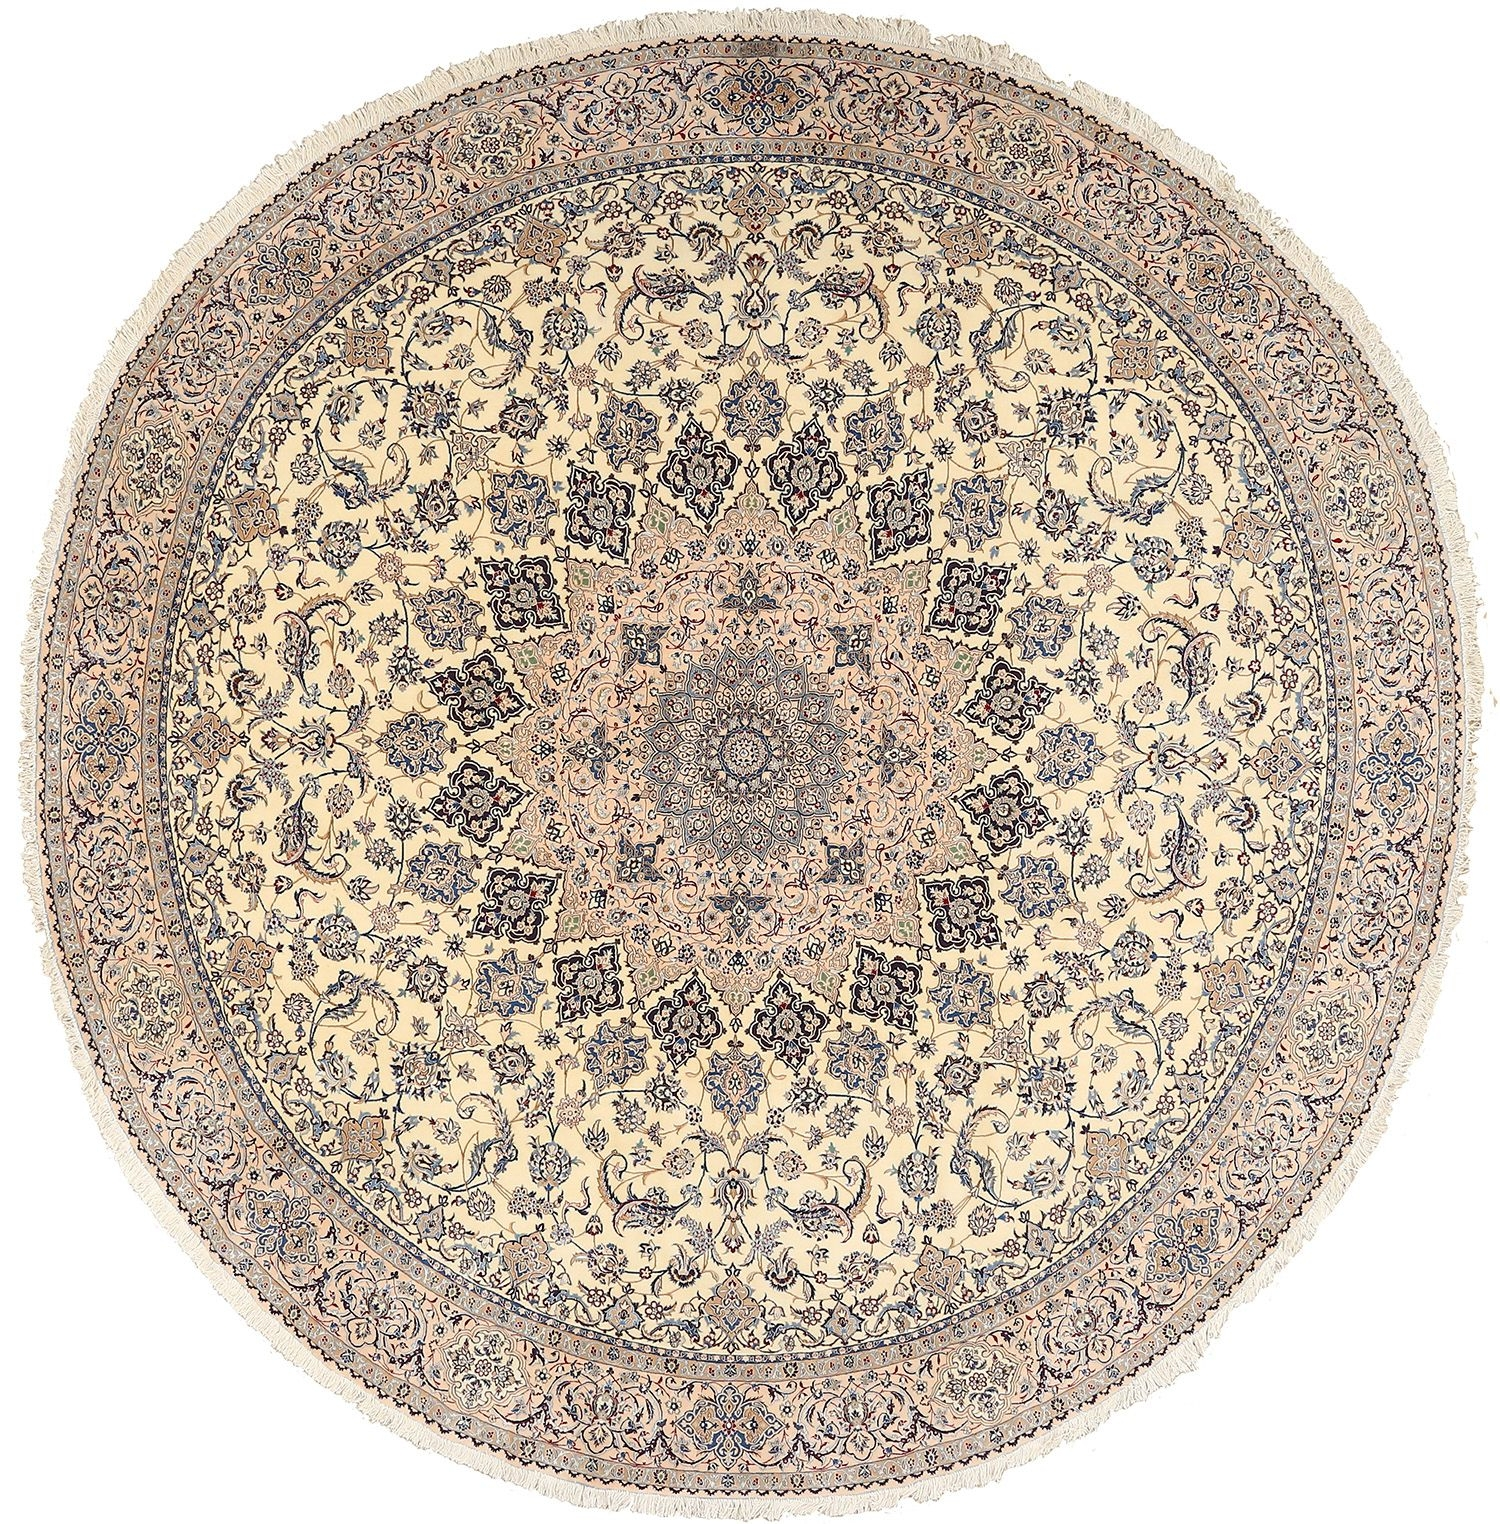 Round Rugs Round Carpets Oval Rugs Round Size Rugs And Carpets For Circular Carpets (Image 9 of 15)